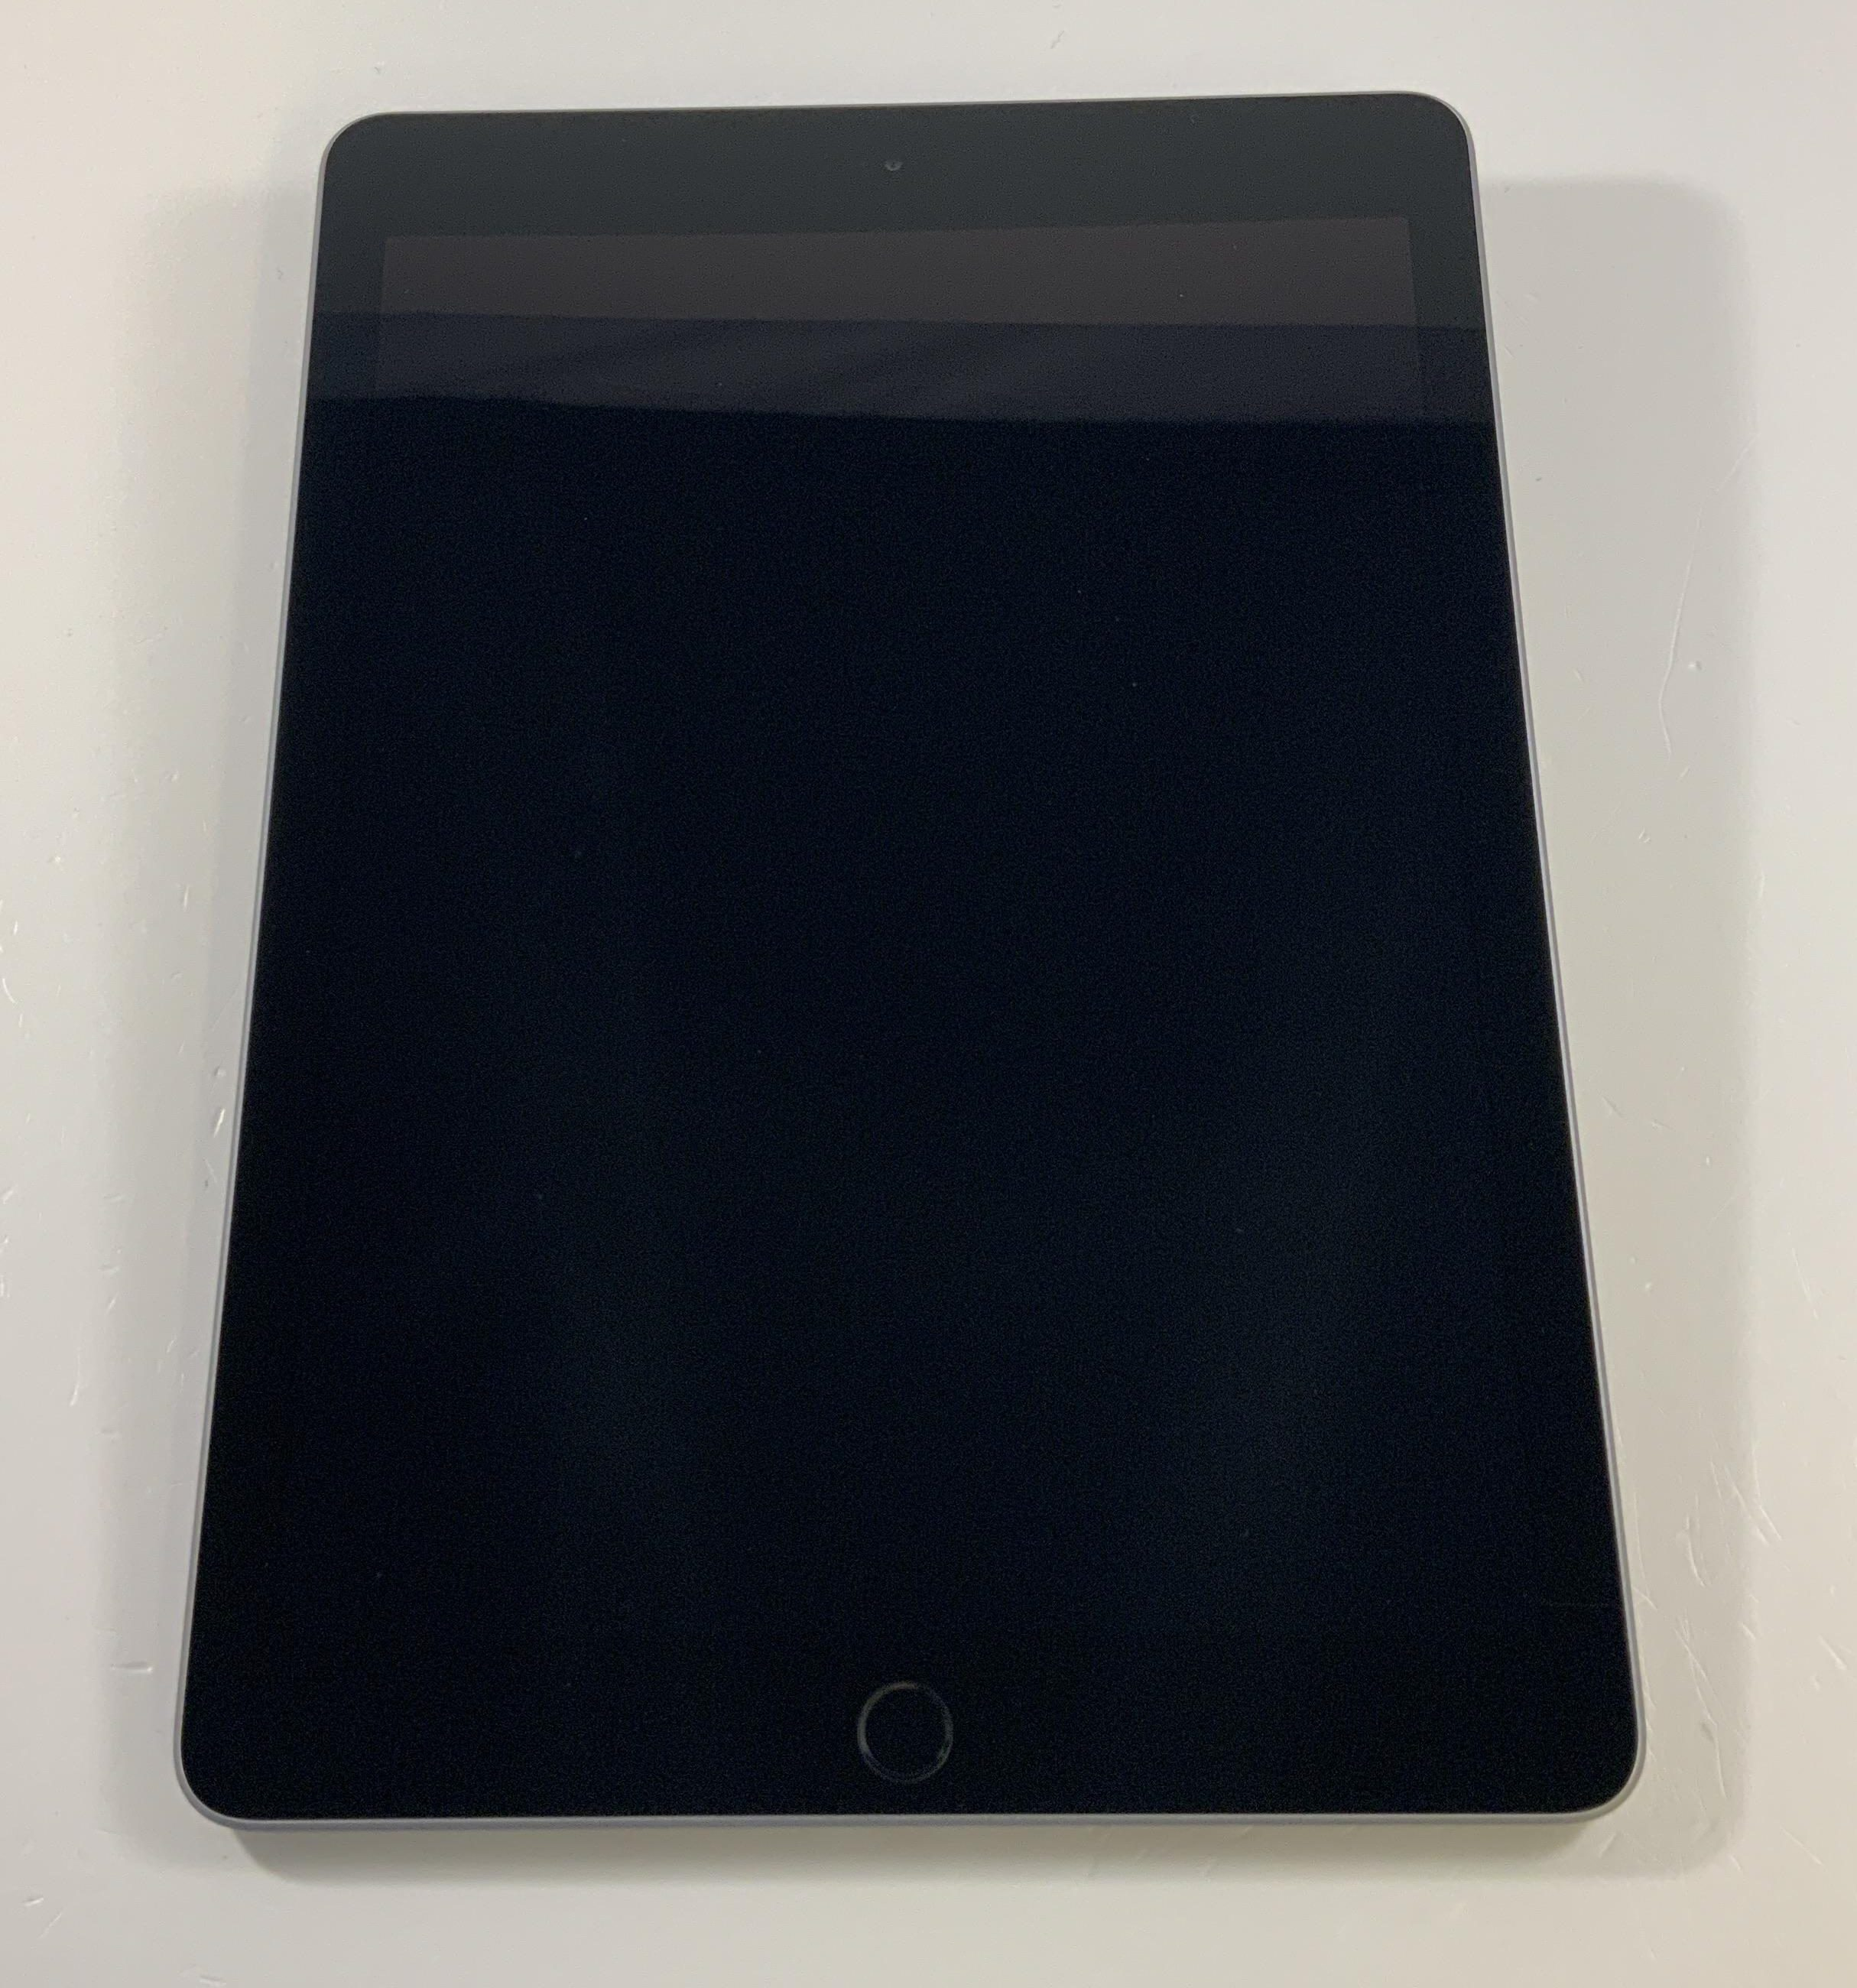 iPad 6 Wi-Fi 32GB, 32GB, Space Gray, immagine 1